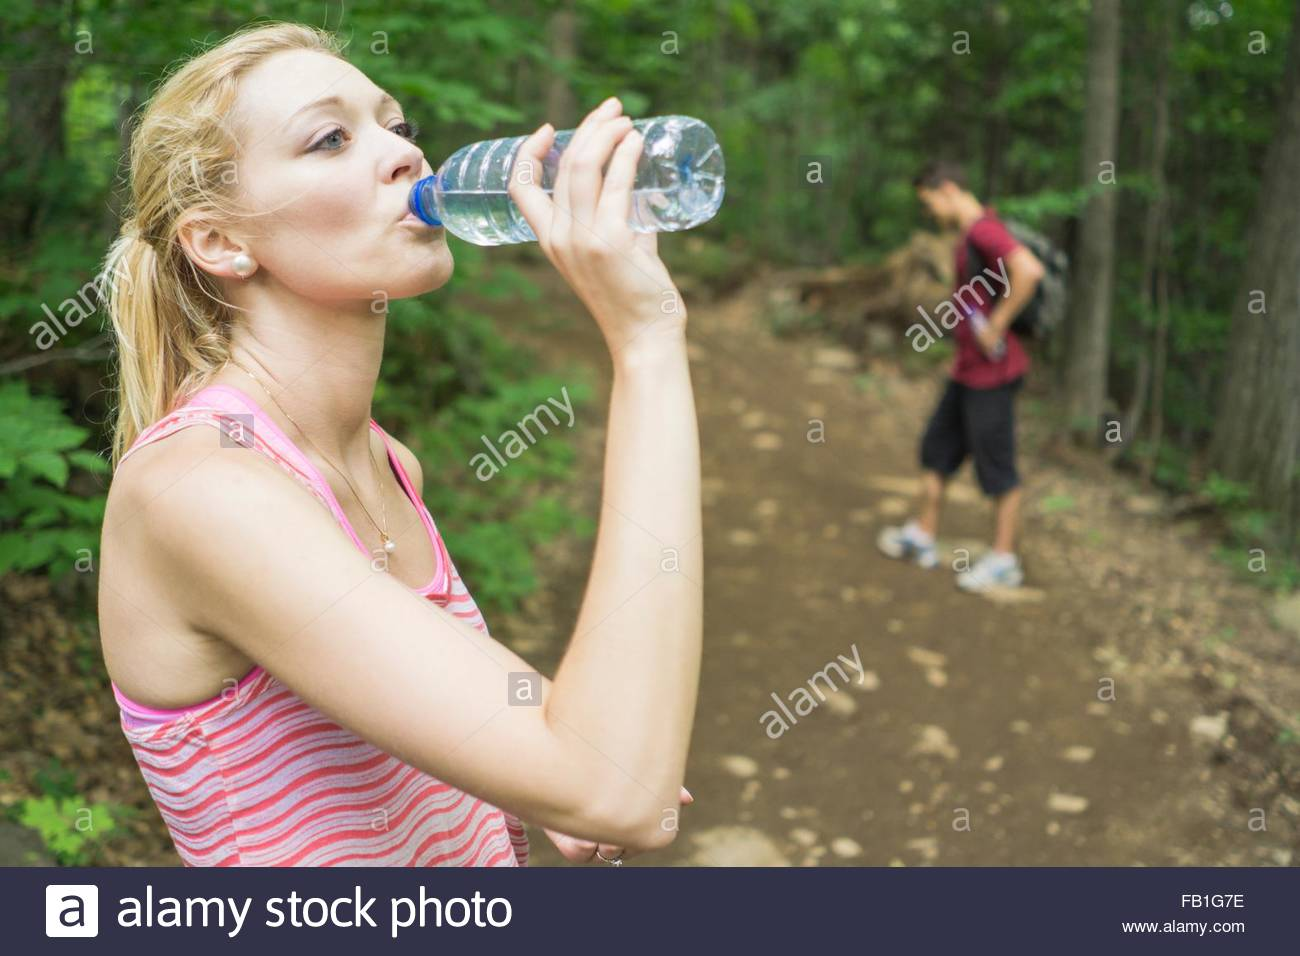 Young woman in forest, drinking from water bottle - Stock Image